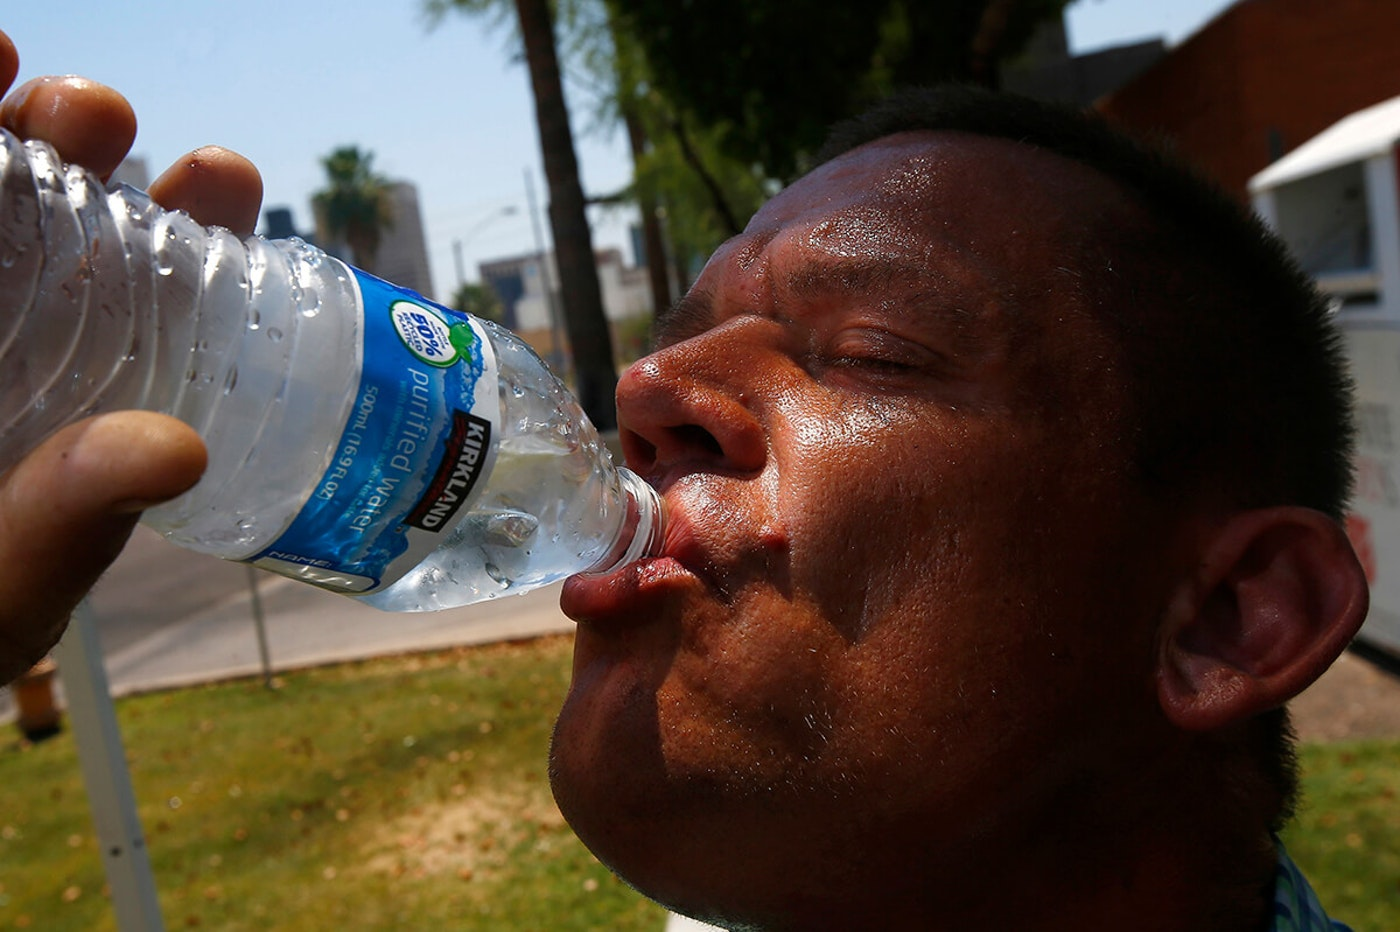 man sweating and drinking from a water bottle